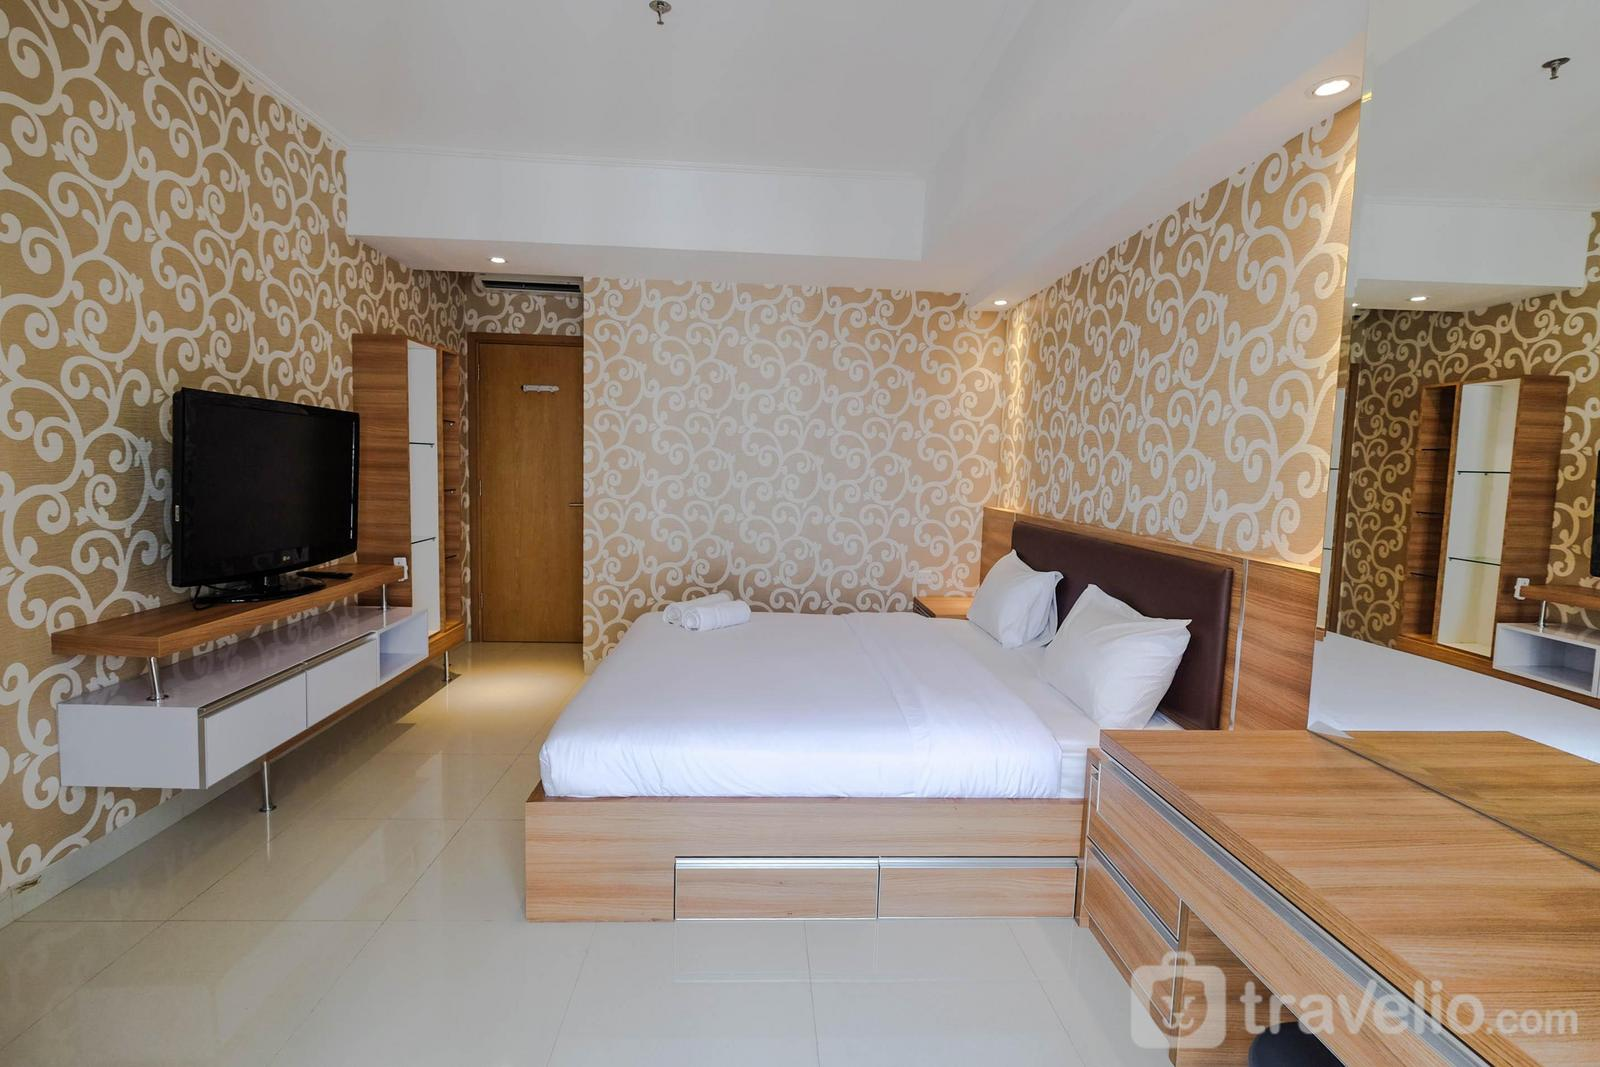 The Mansion Kemayoran - 2BR with Luxury Interior @ The Mansion Kemayoran Apartment By Travelio